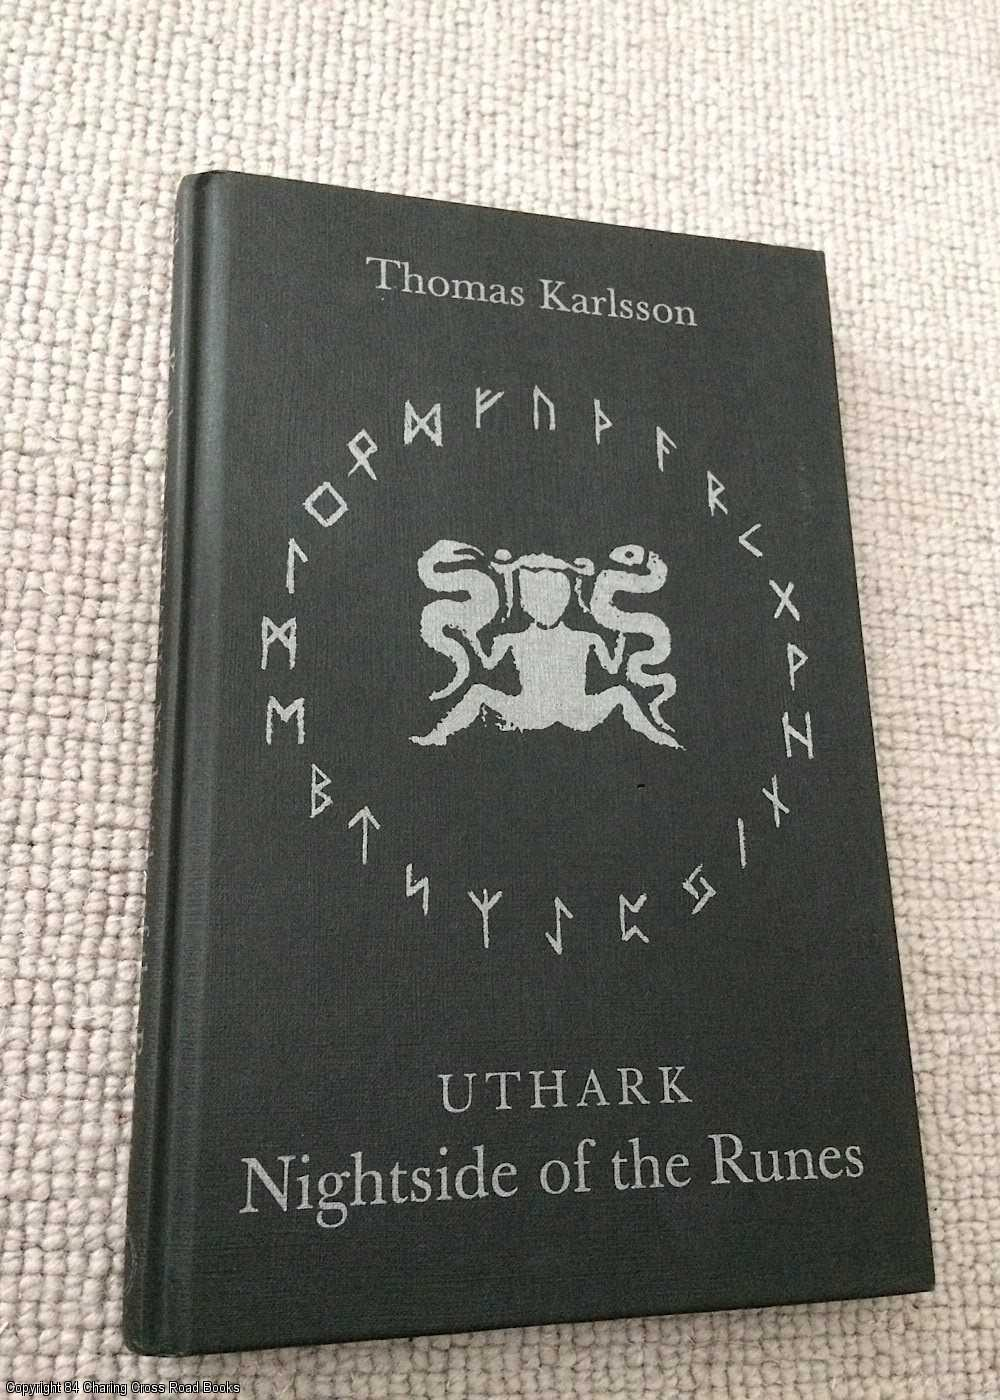 KETOLA, T.; KARLSSON, THOMAS - Uthark: Nightside of the Runes